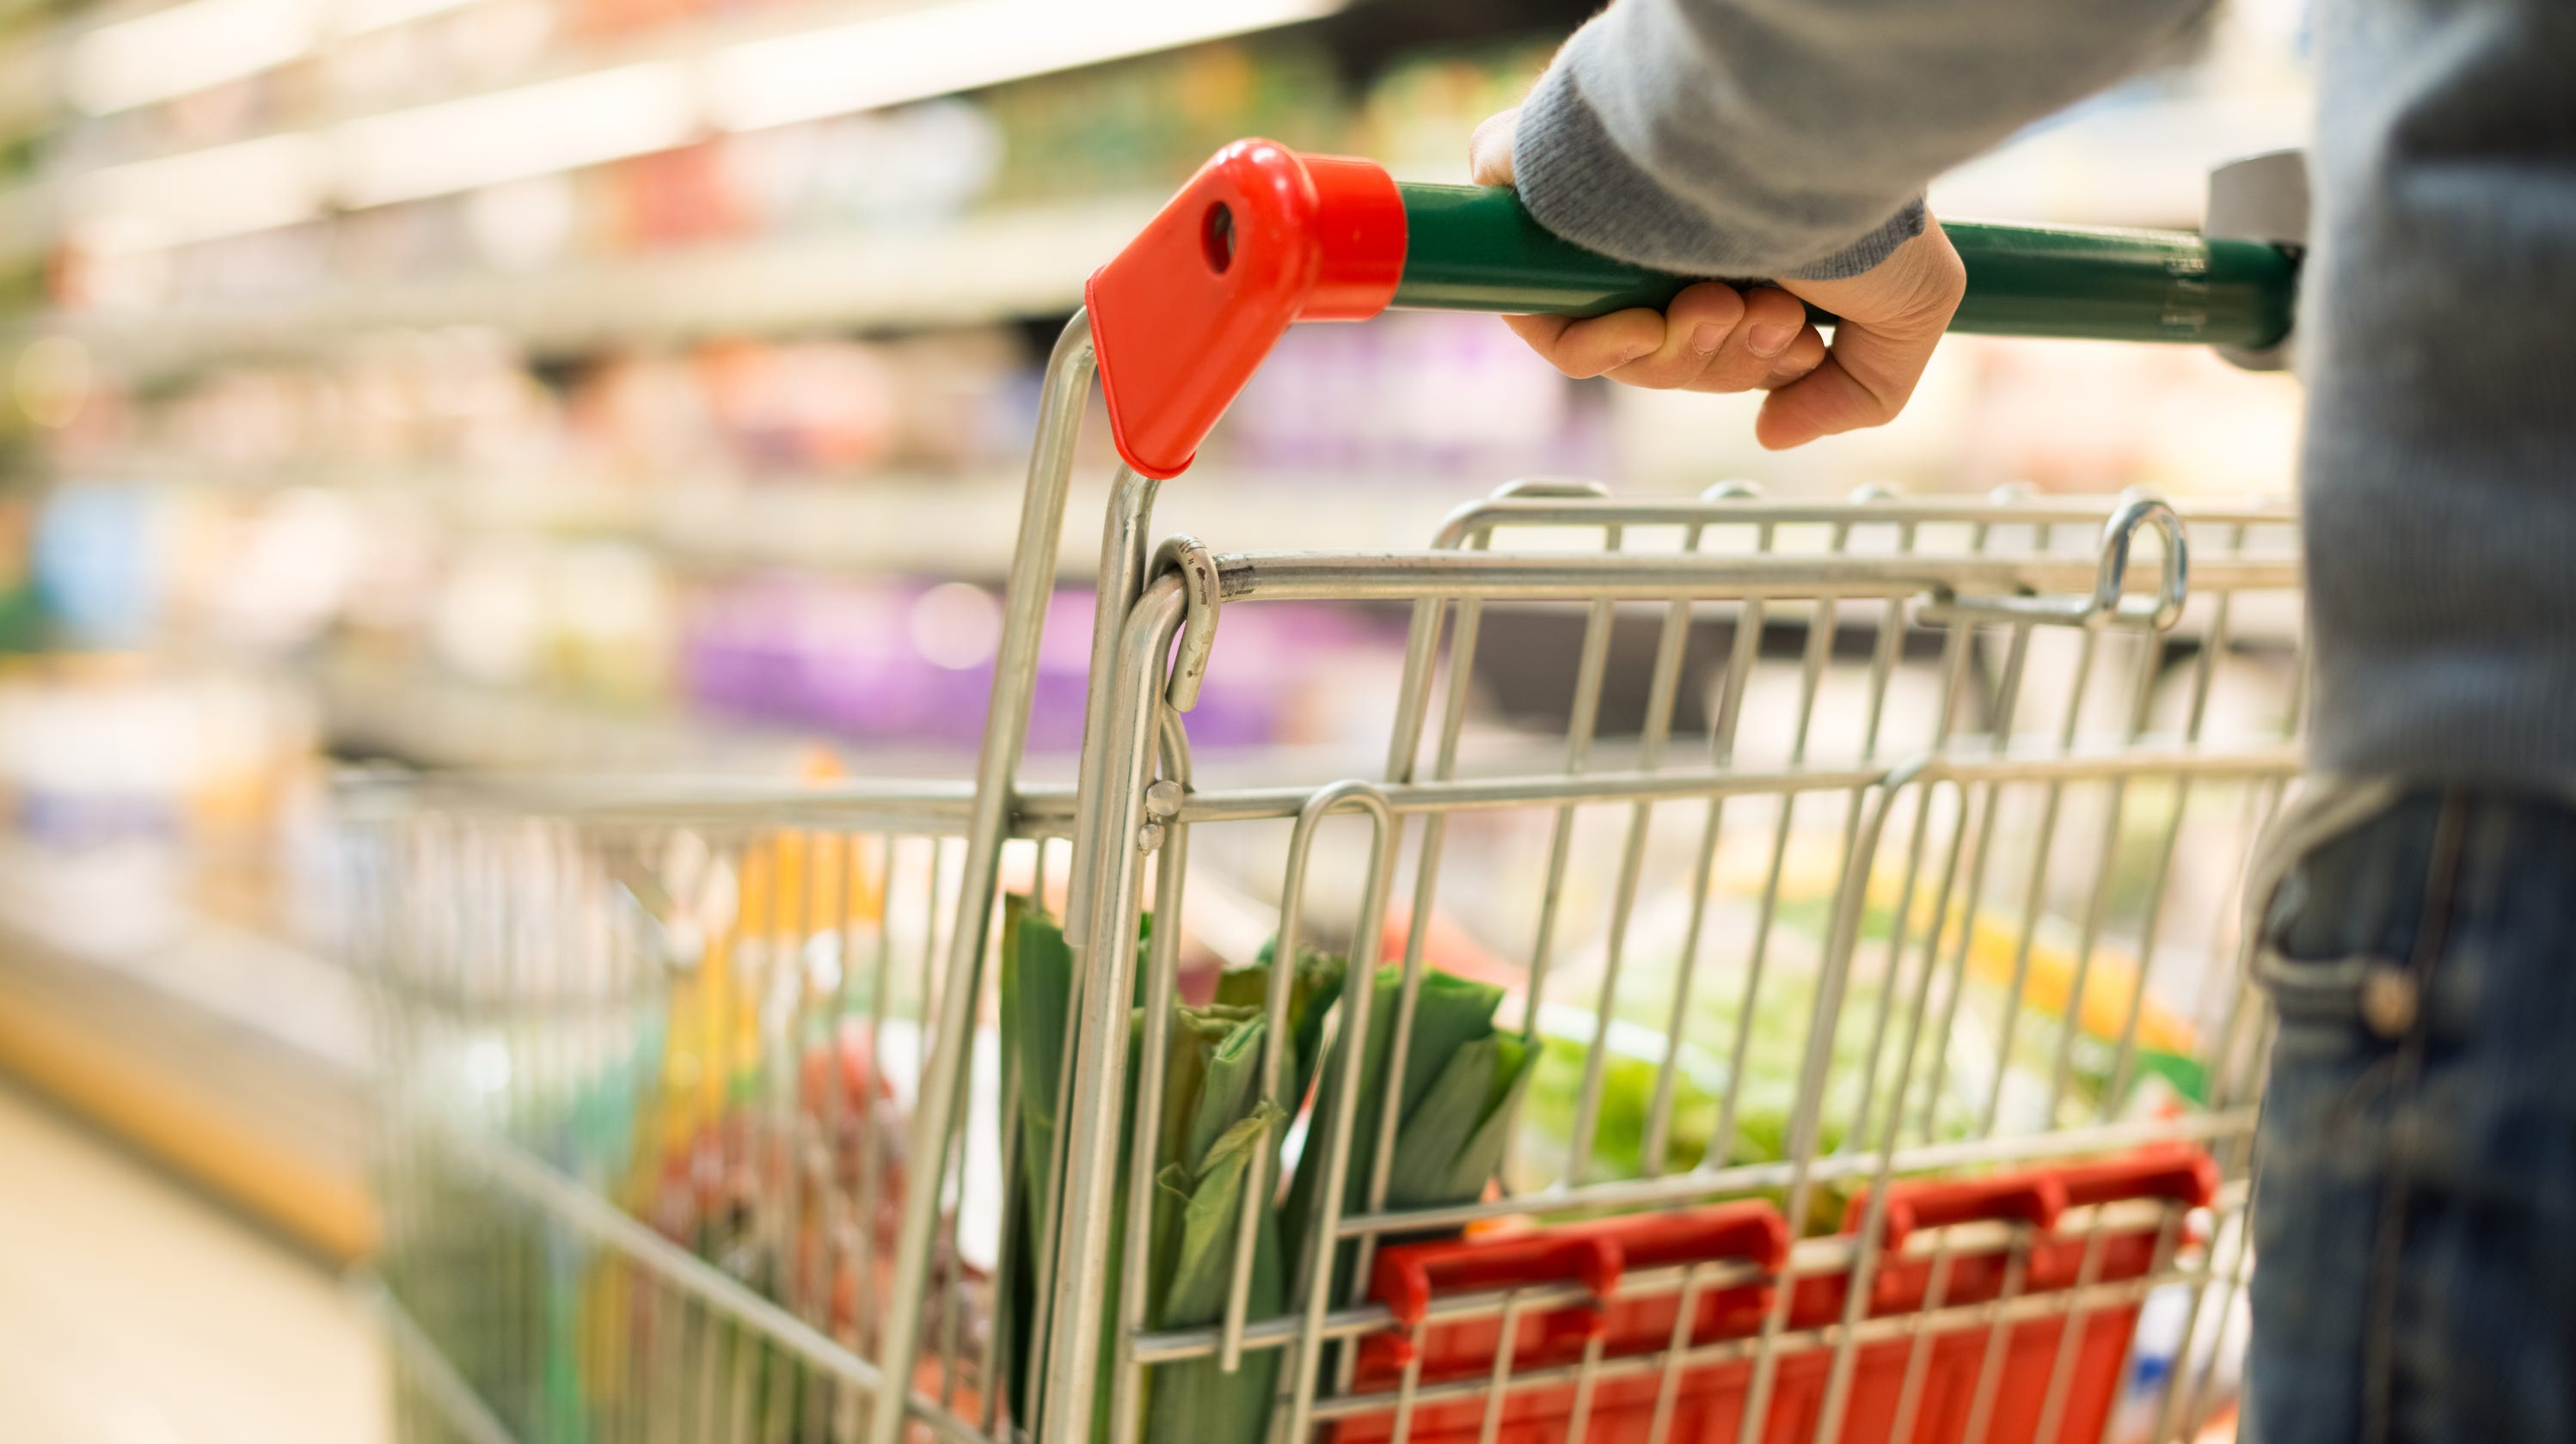 FDA wants food expiration dates standardized with 'best if used by' to cut waste